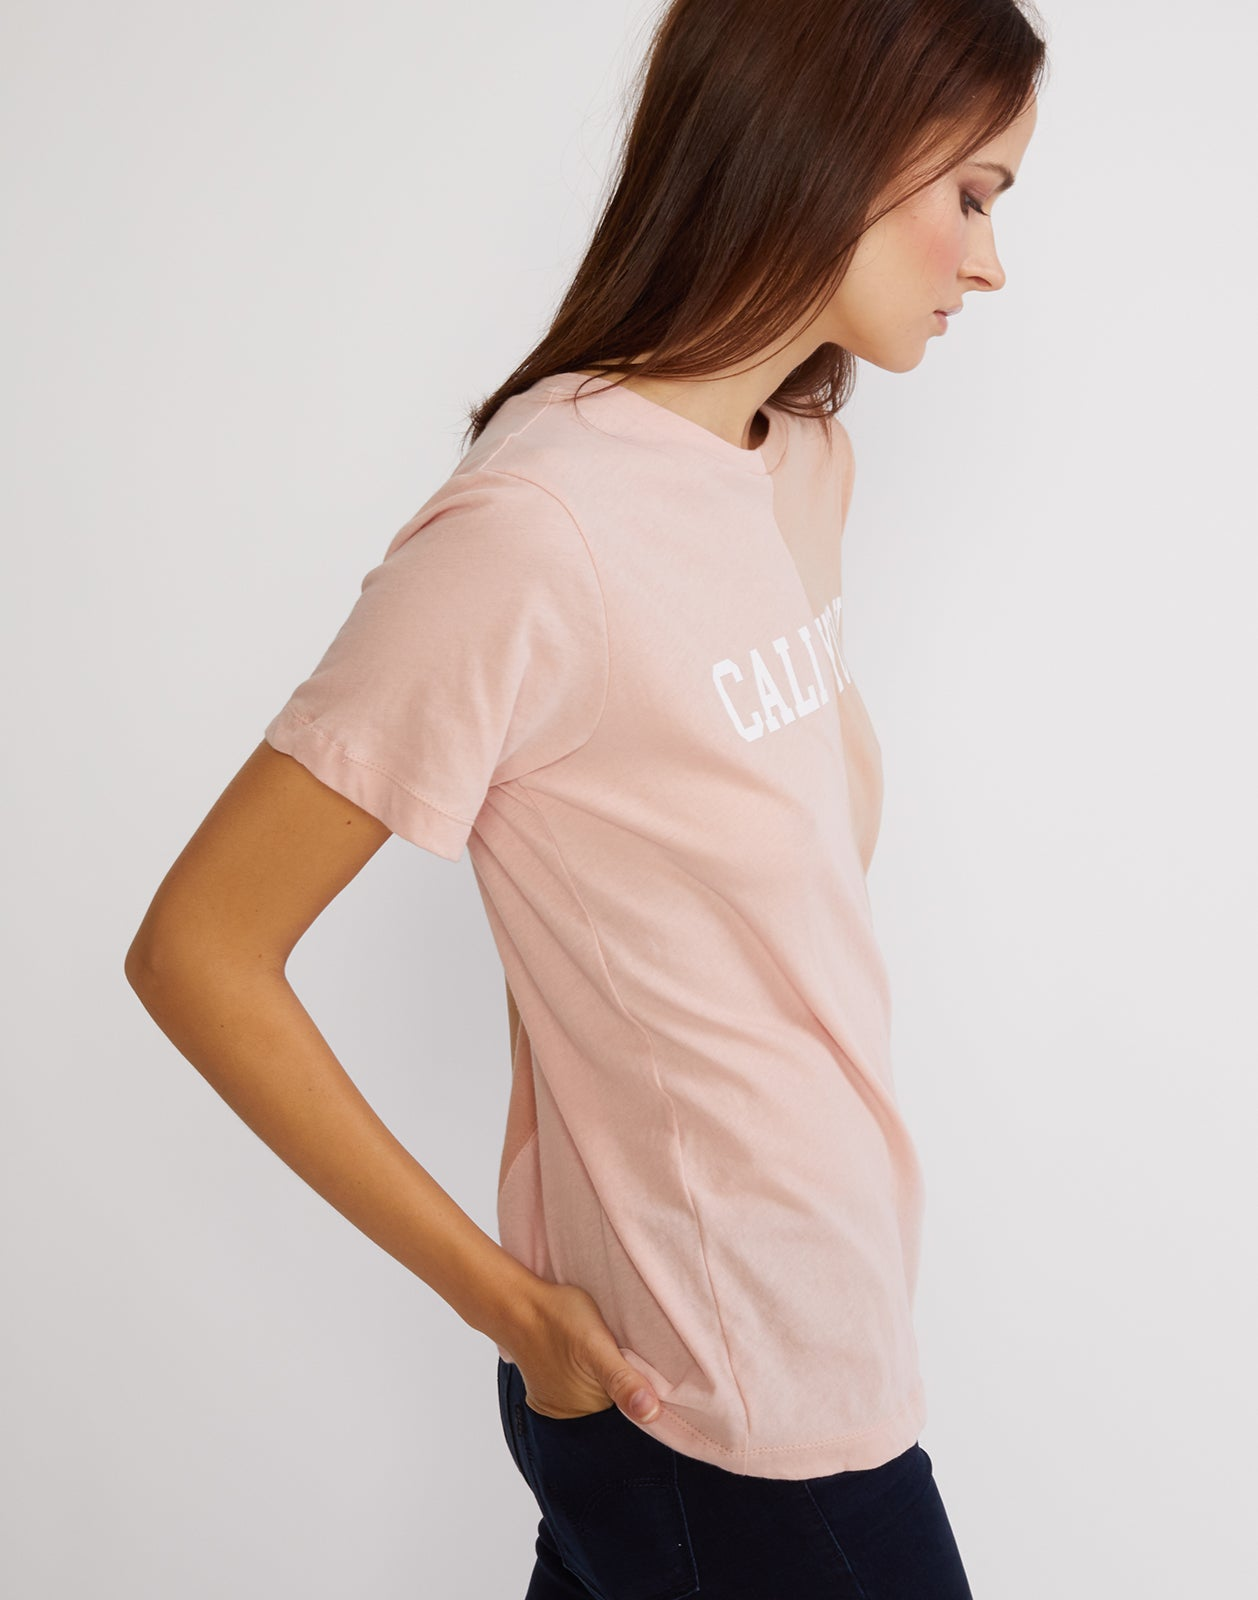 Side view detail of the short sleeved half beige, half pink caliyork tee in soft cotton.